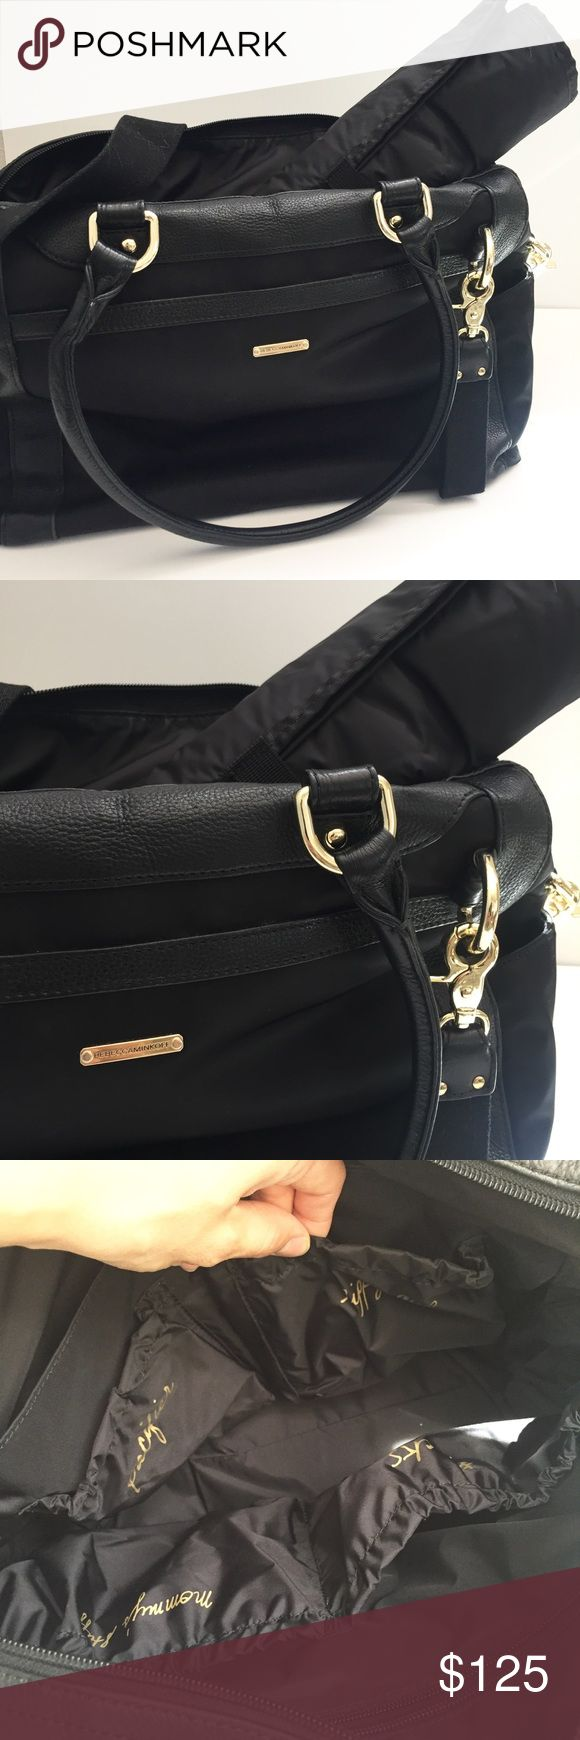 "Rebecca Minkoff Knocked Up diaper bag The perfect diaper mom for the fashionista mom! Gorgeous! Discreet! Fits everything you need! No major markings. No tears. Great condition. Only used for 8 months. Comes with messenger strap and changing pad.  Black with gold hardware My rough measurements: 17""(w) x 11""(h) x 6""(w) Original $345 Rebecca Minkoff Bags"